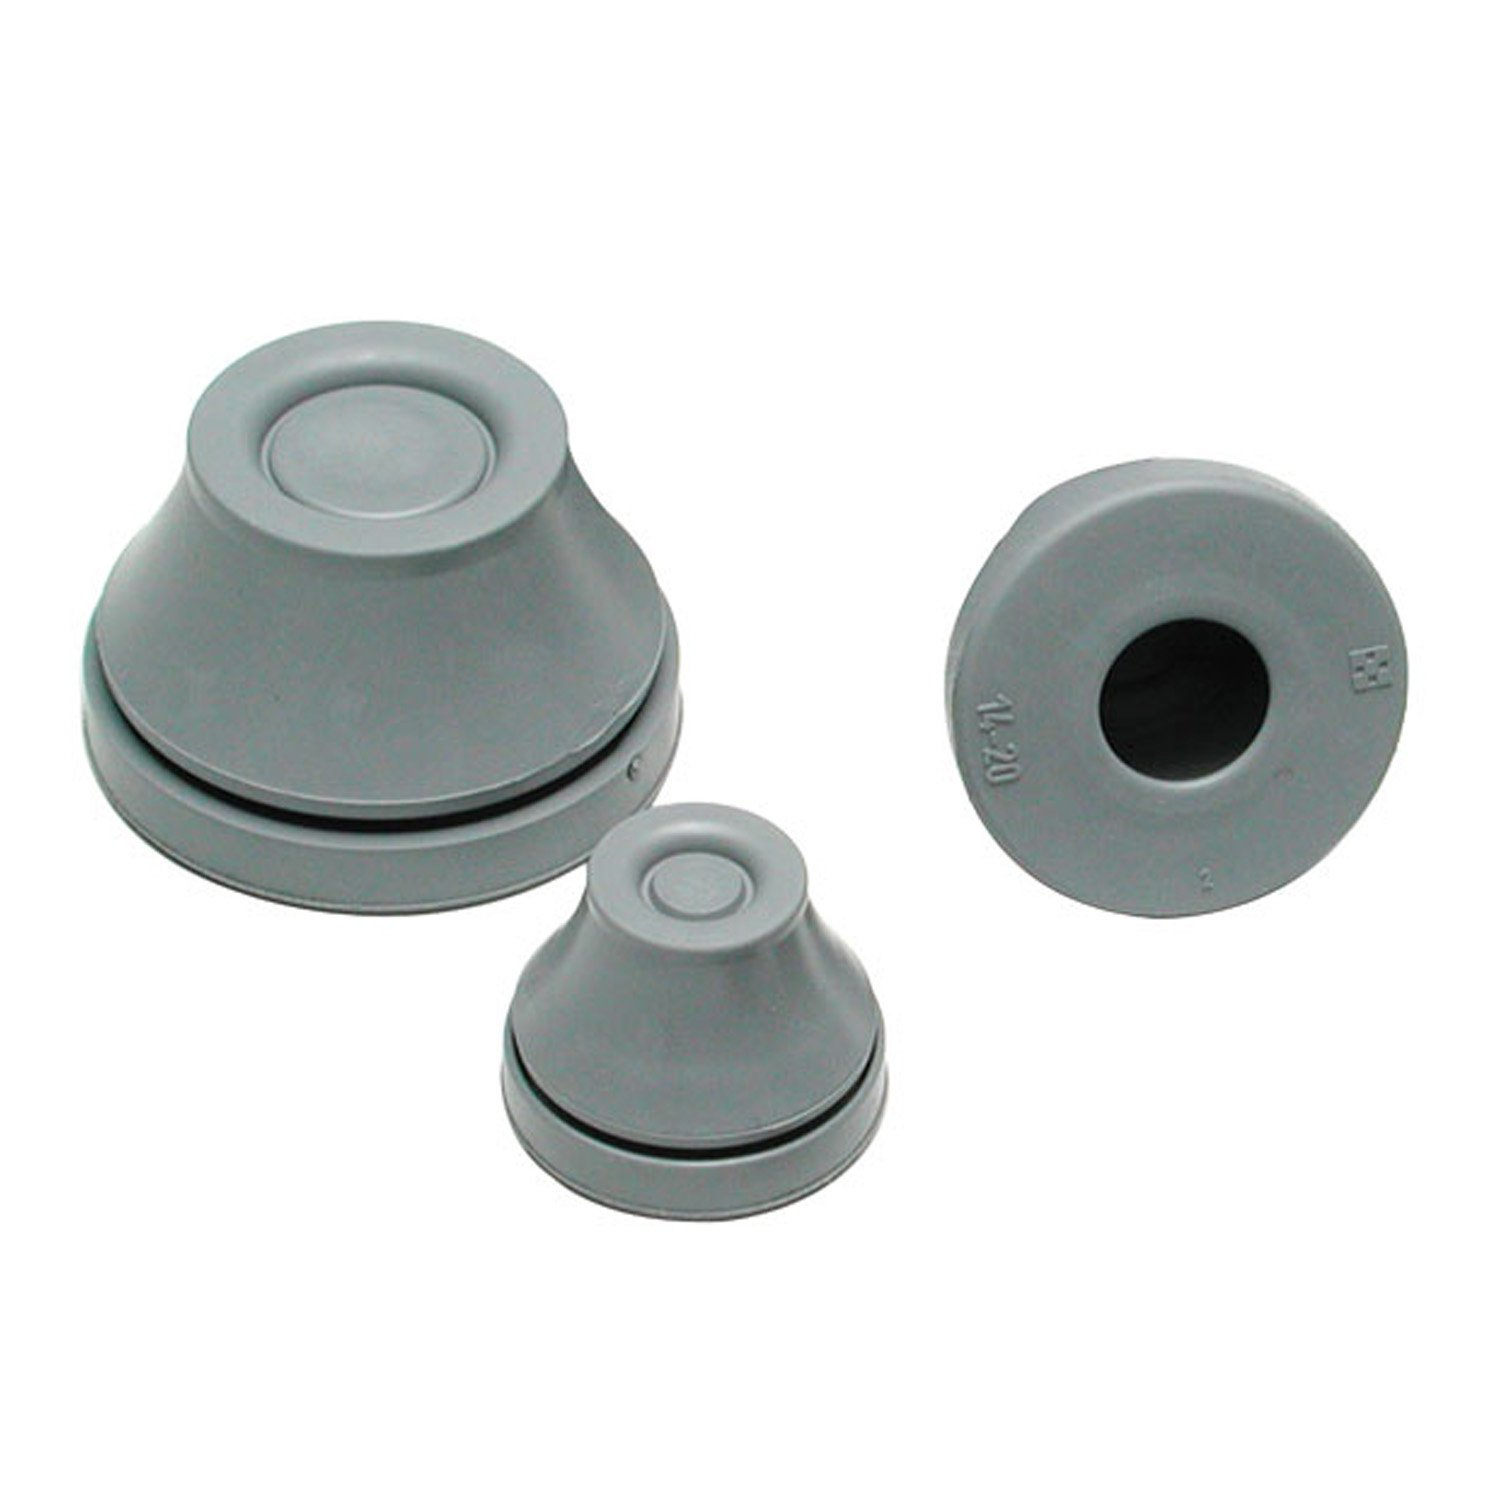 ASI 3008060 Type Portland Mall RS1928M40 Rutaseal Th Gland Grommet Fits Cable Complete Free Shipping